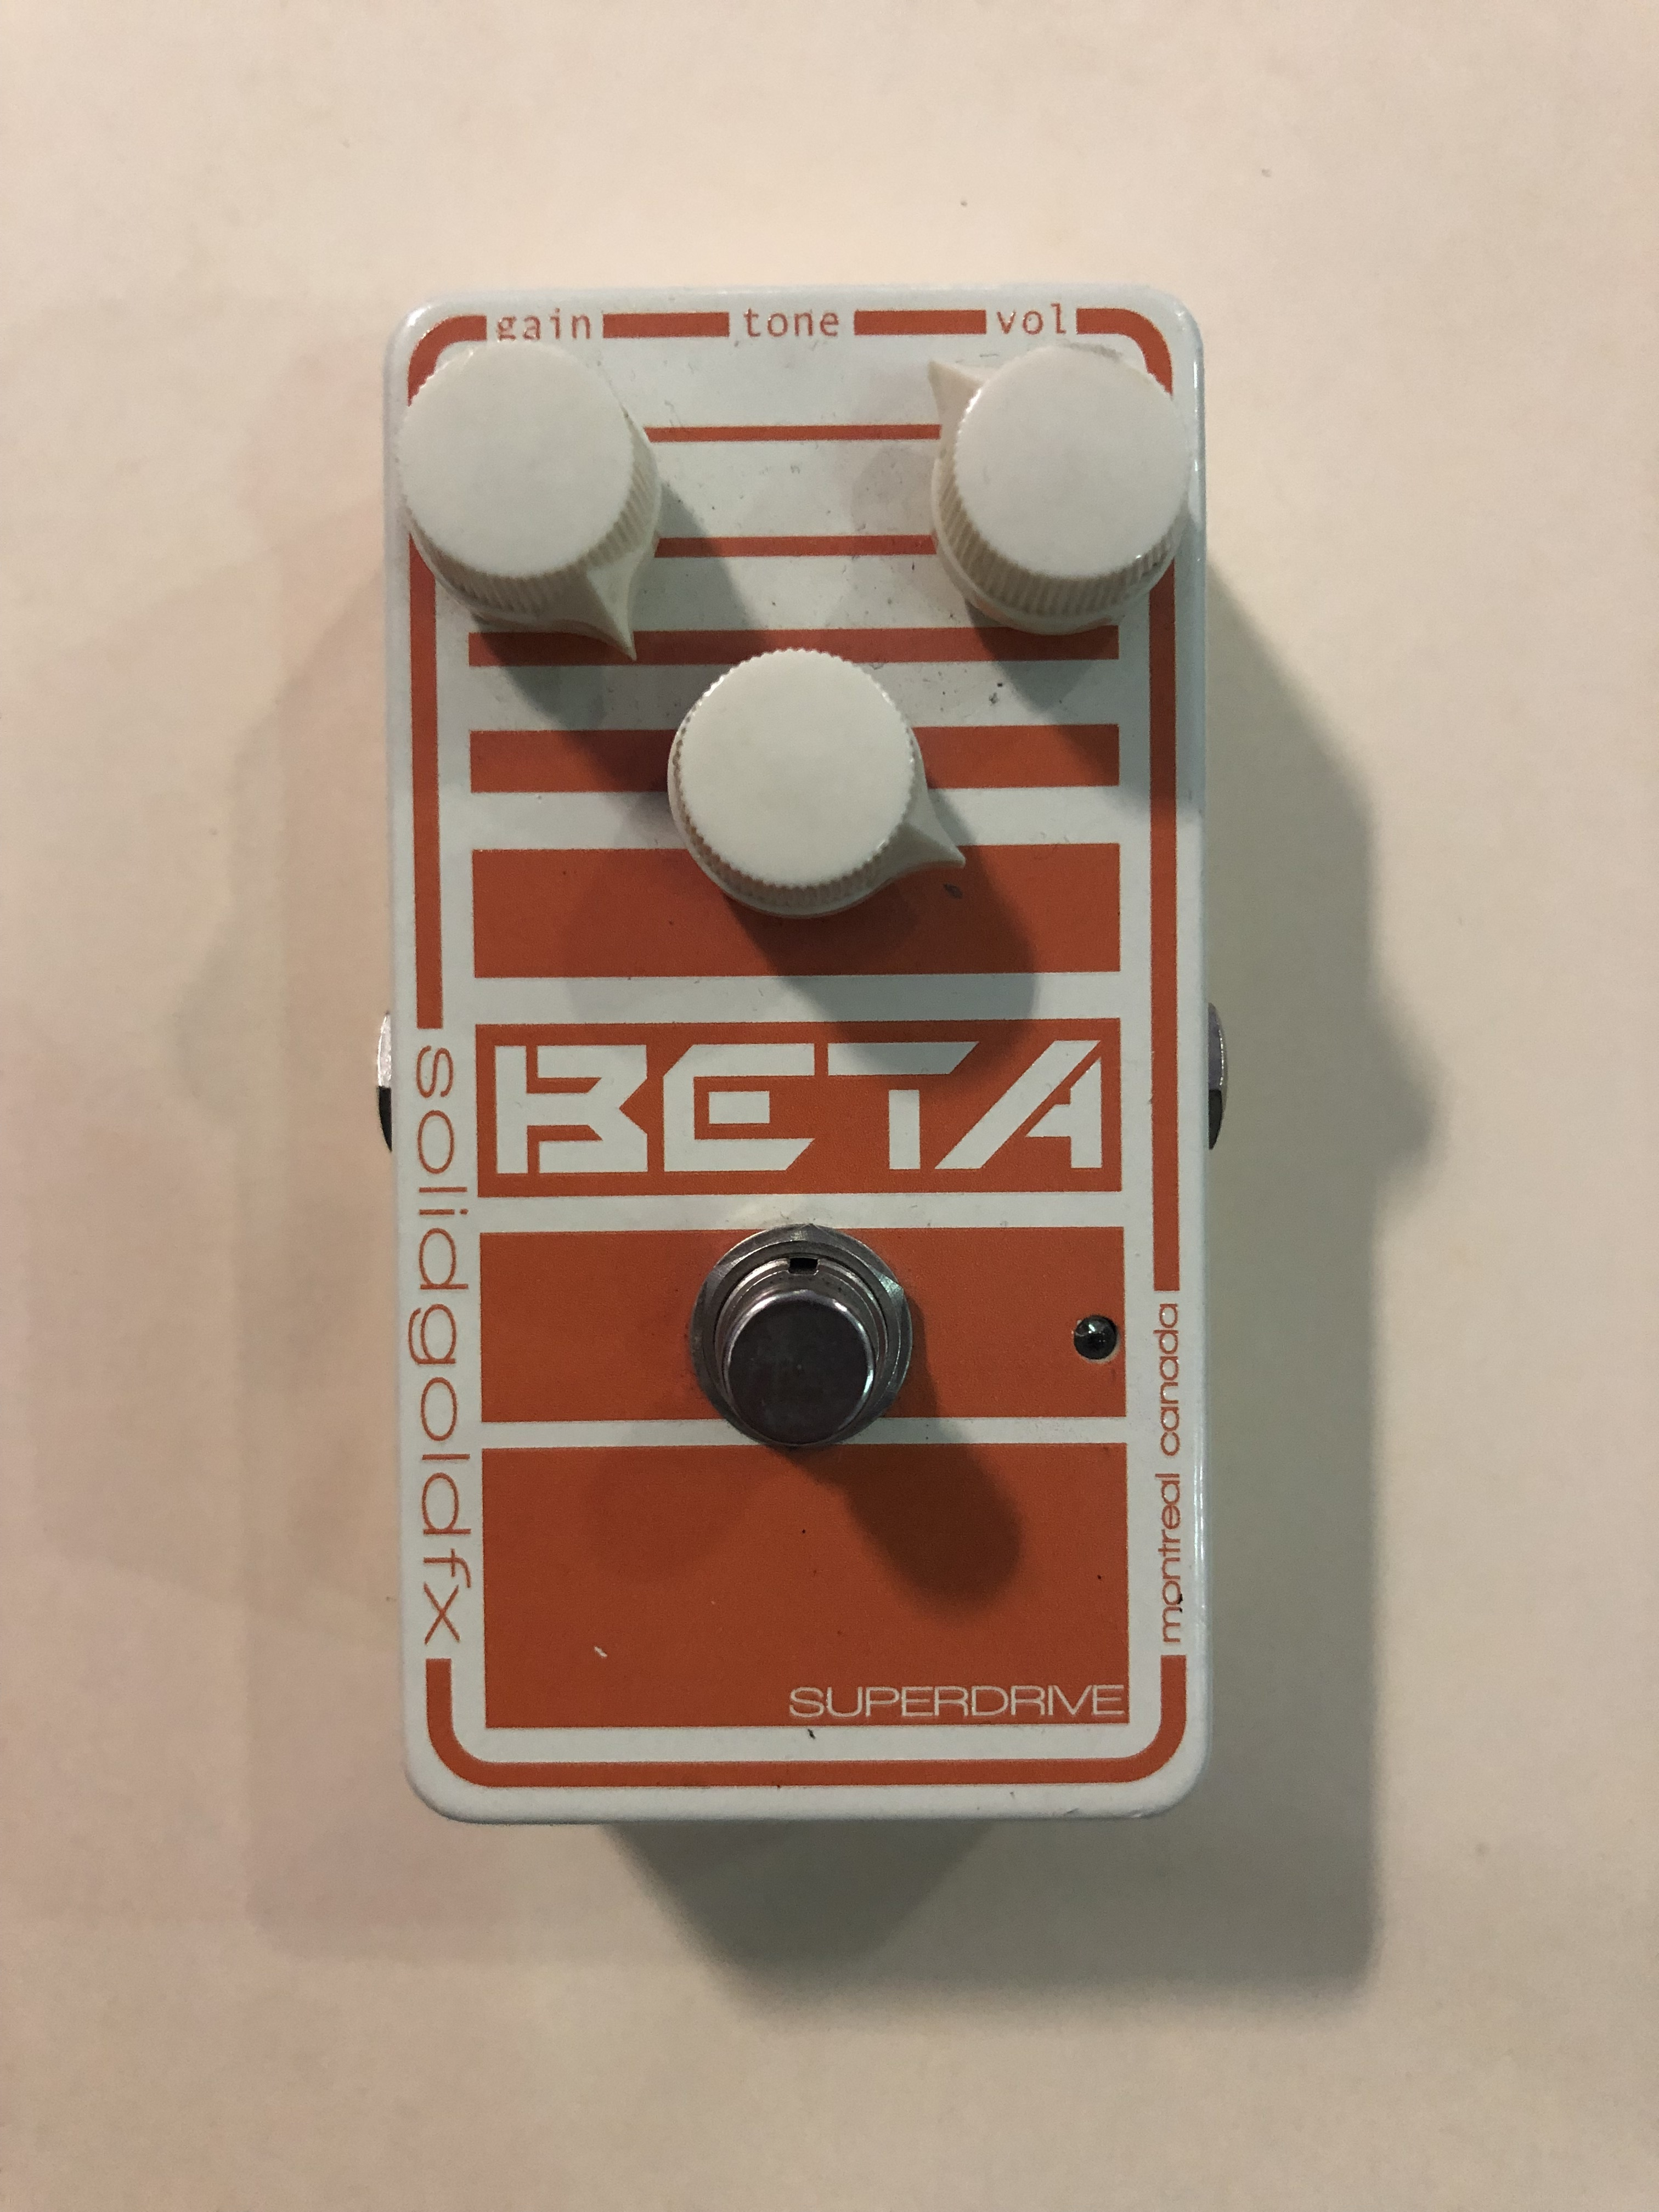 SOLIDGOLD FX - BETA MKII - BASS OVERDRIVE EFFECTS PEDAL